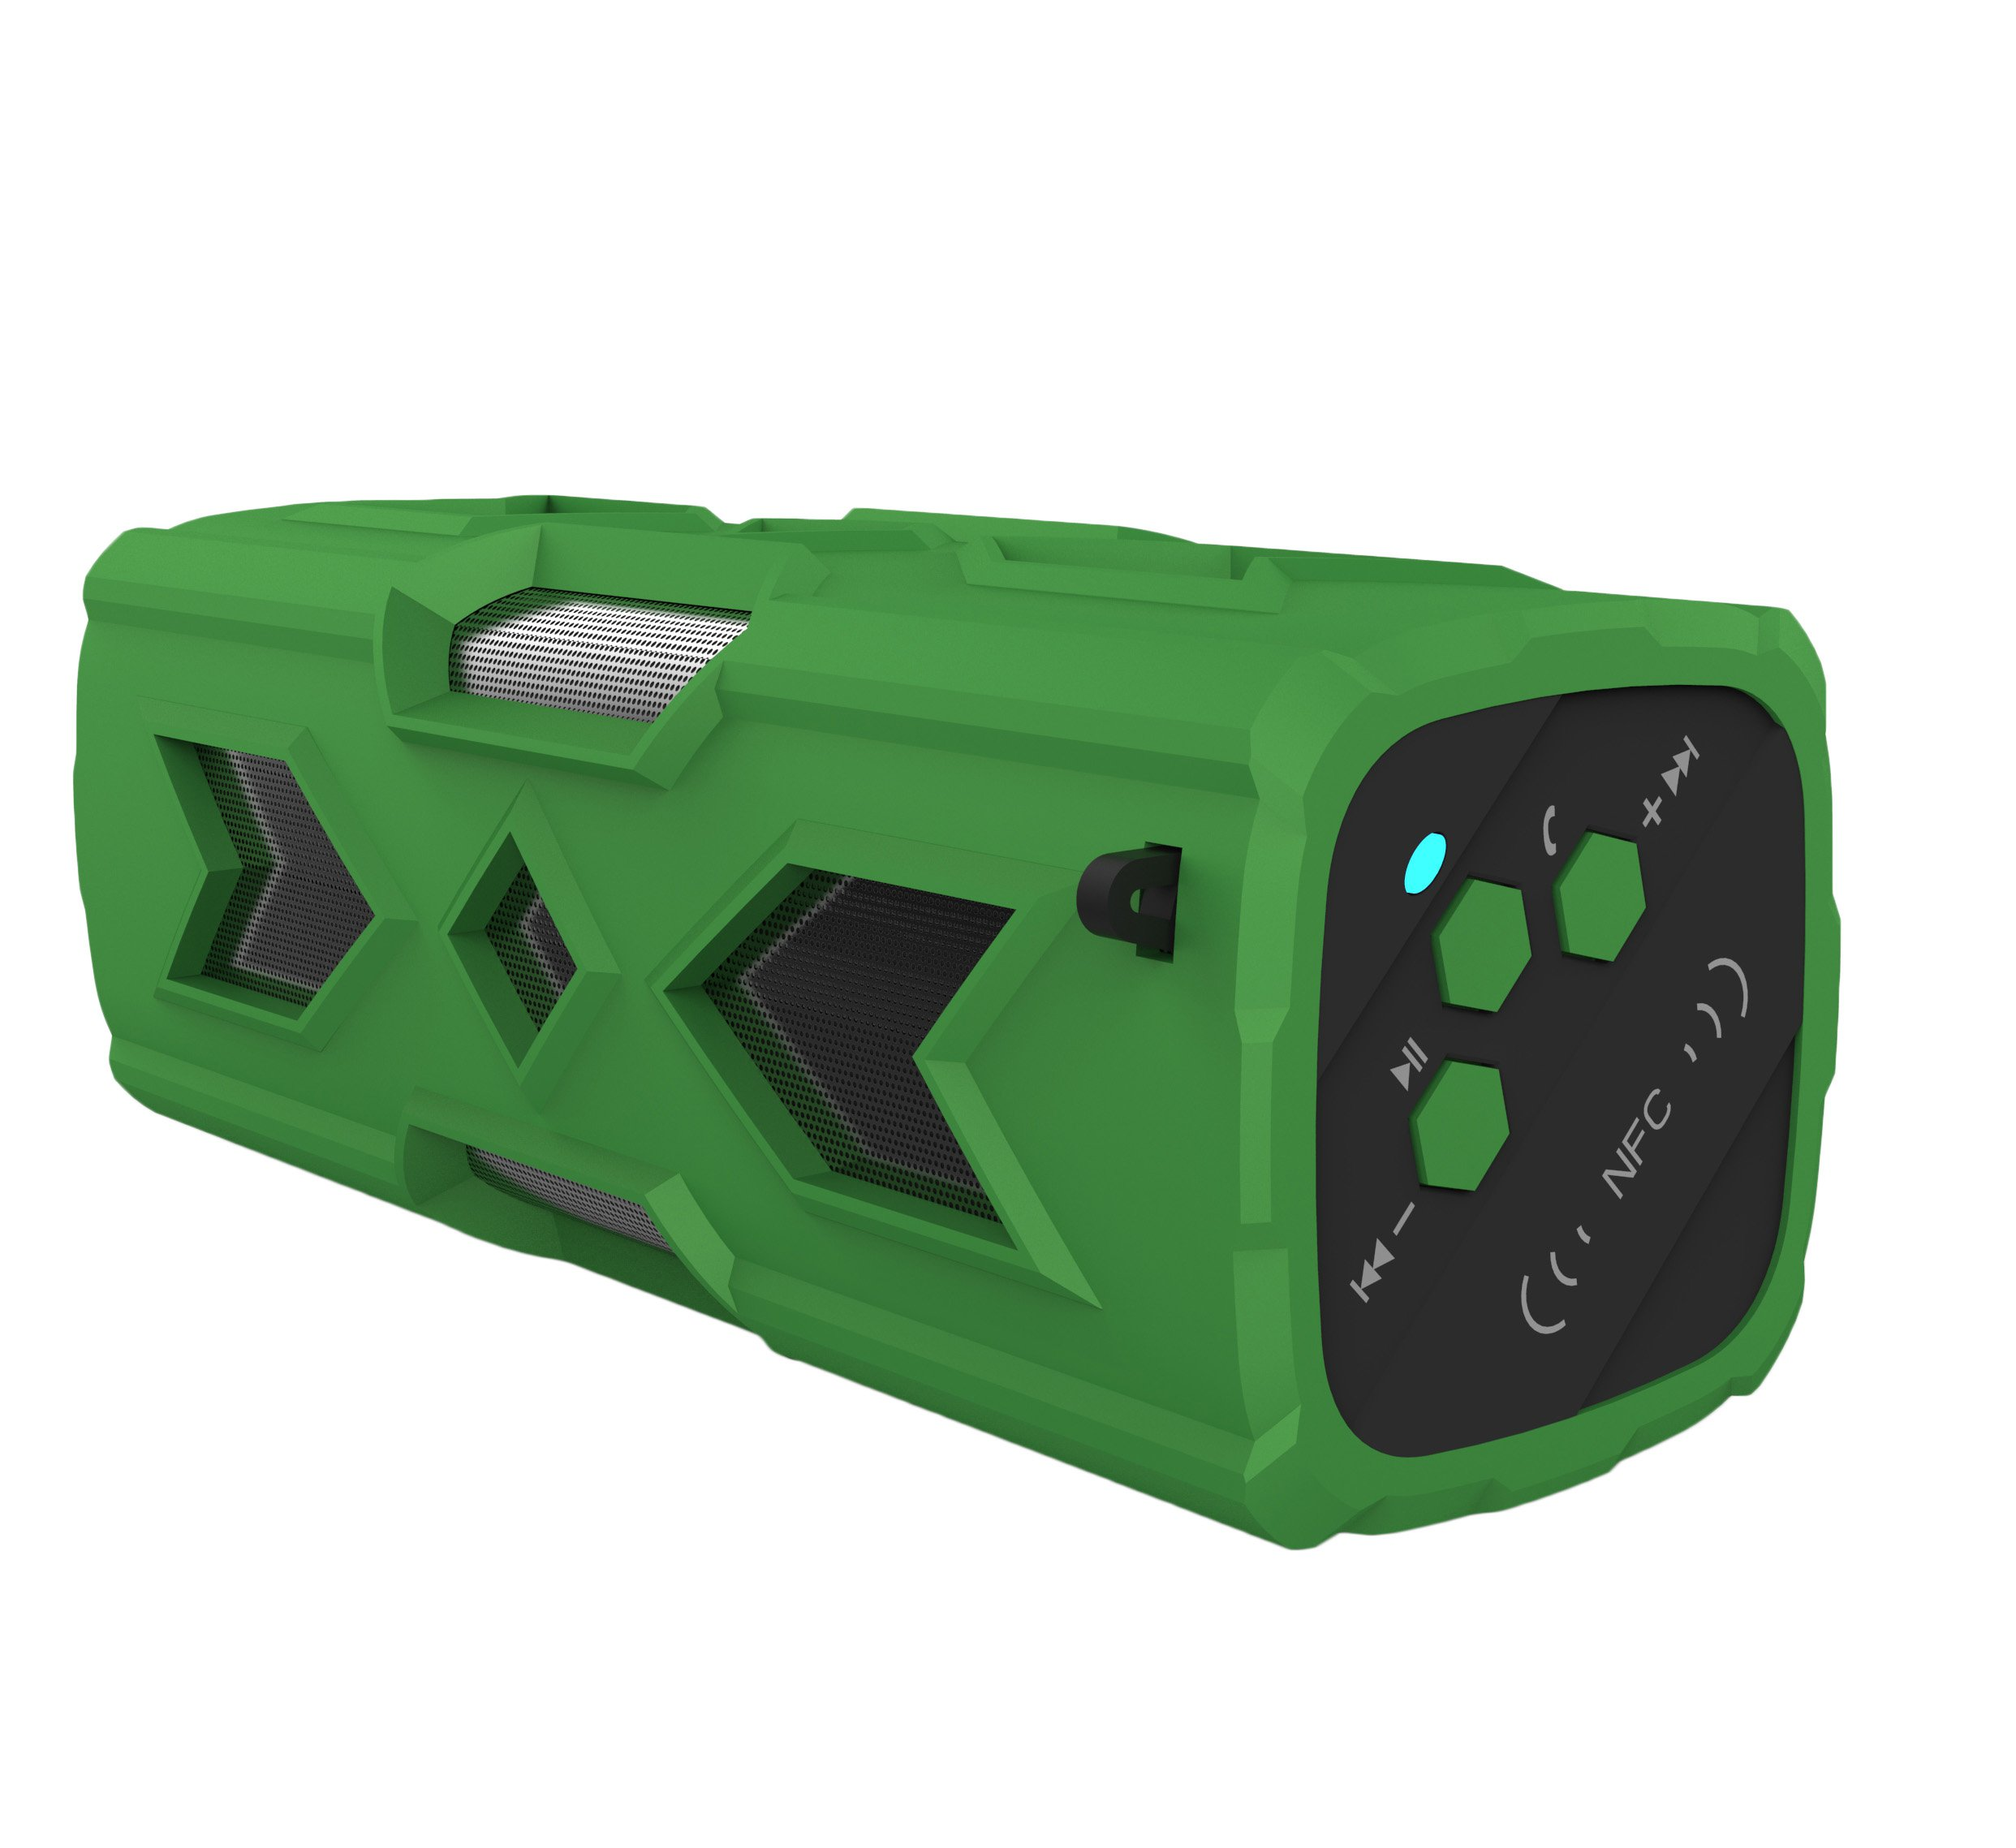 Portable Mini Bluetooth Speaker With 10-Hour Playtime, 33-Foot Bluetooth Range Wireless Stereo Loud Bass Sport Stereo Theater (Green) by Pettstore